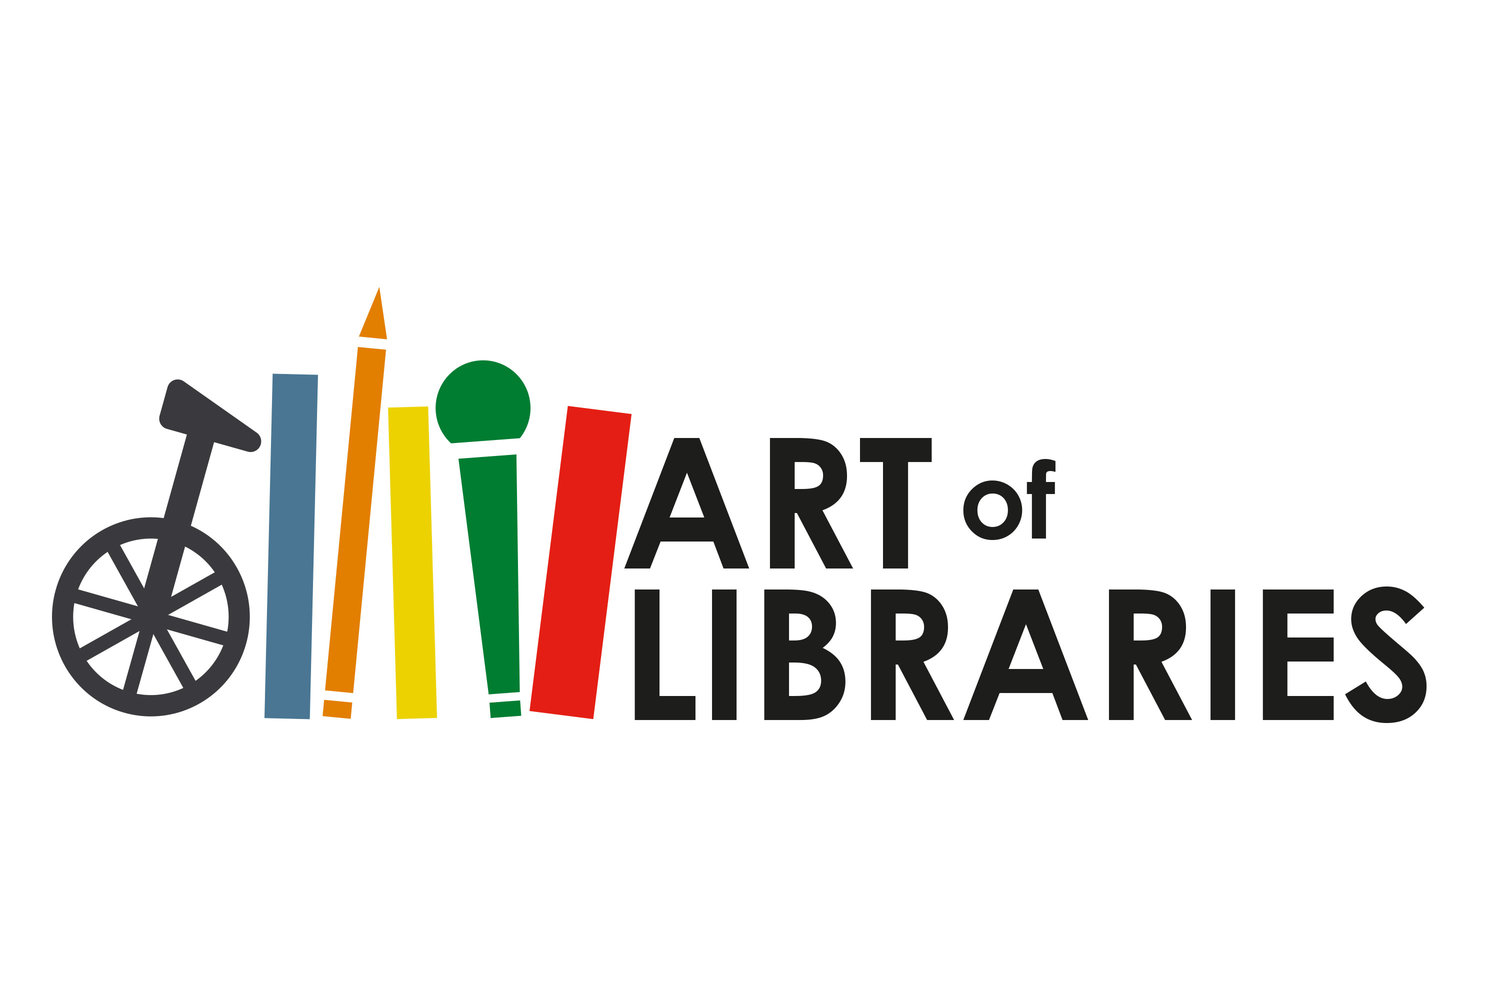 Image result for Art of libraries gloucestershire logo